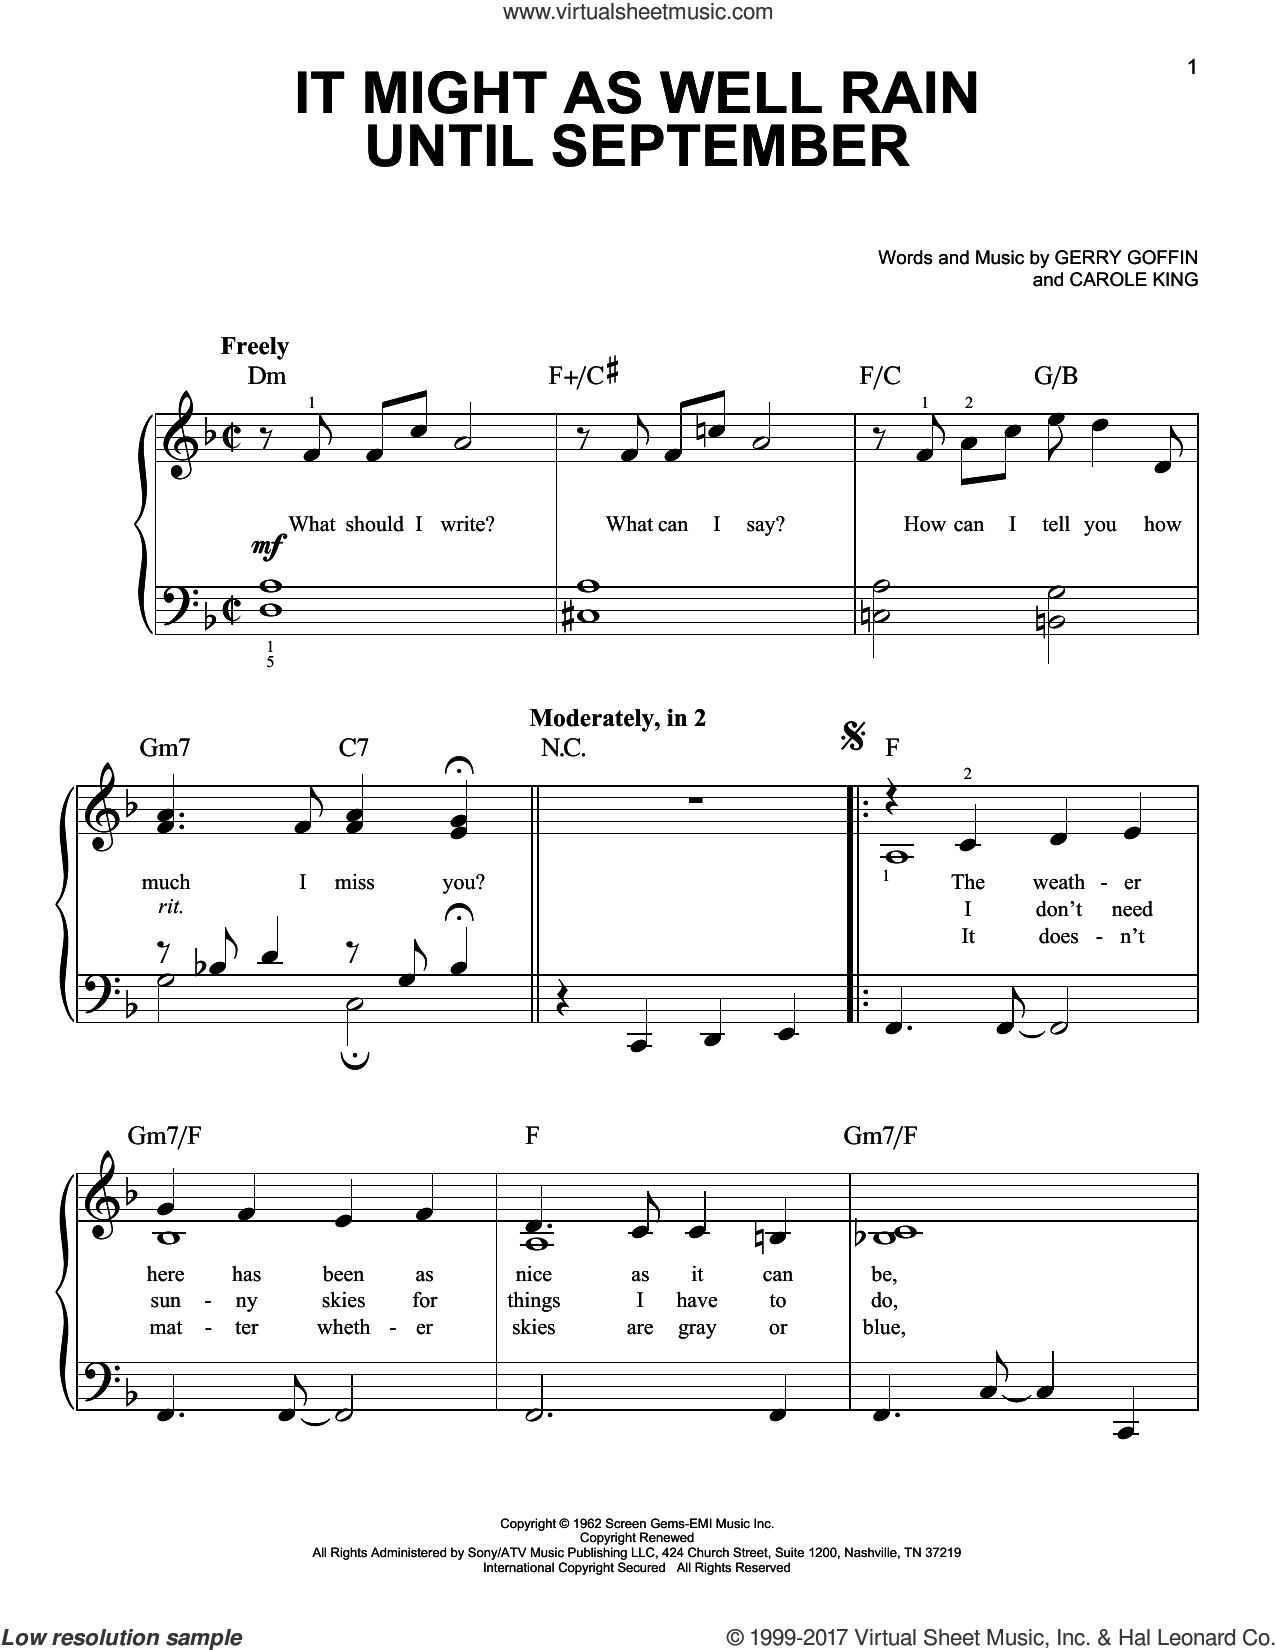 It Might As Well Rain Until September sheet music for piano solo by Carole King and Gerry Goffin. Score Image Preview.